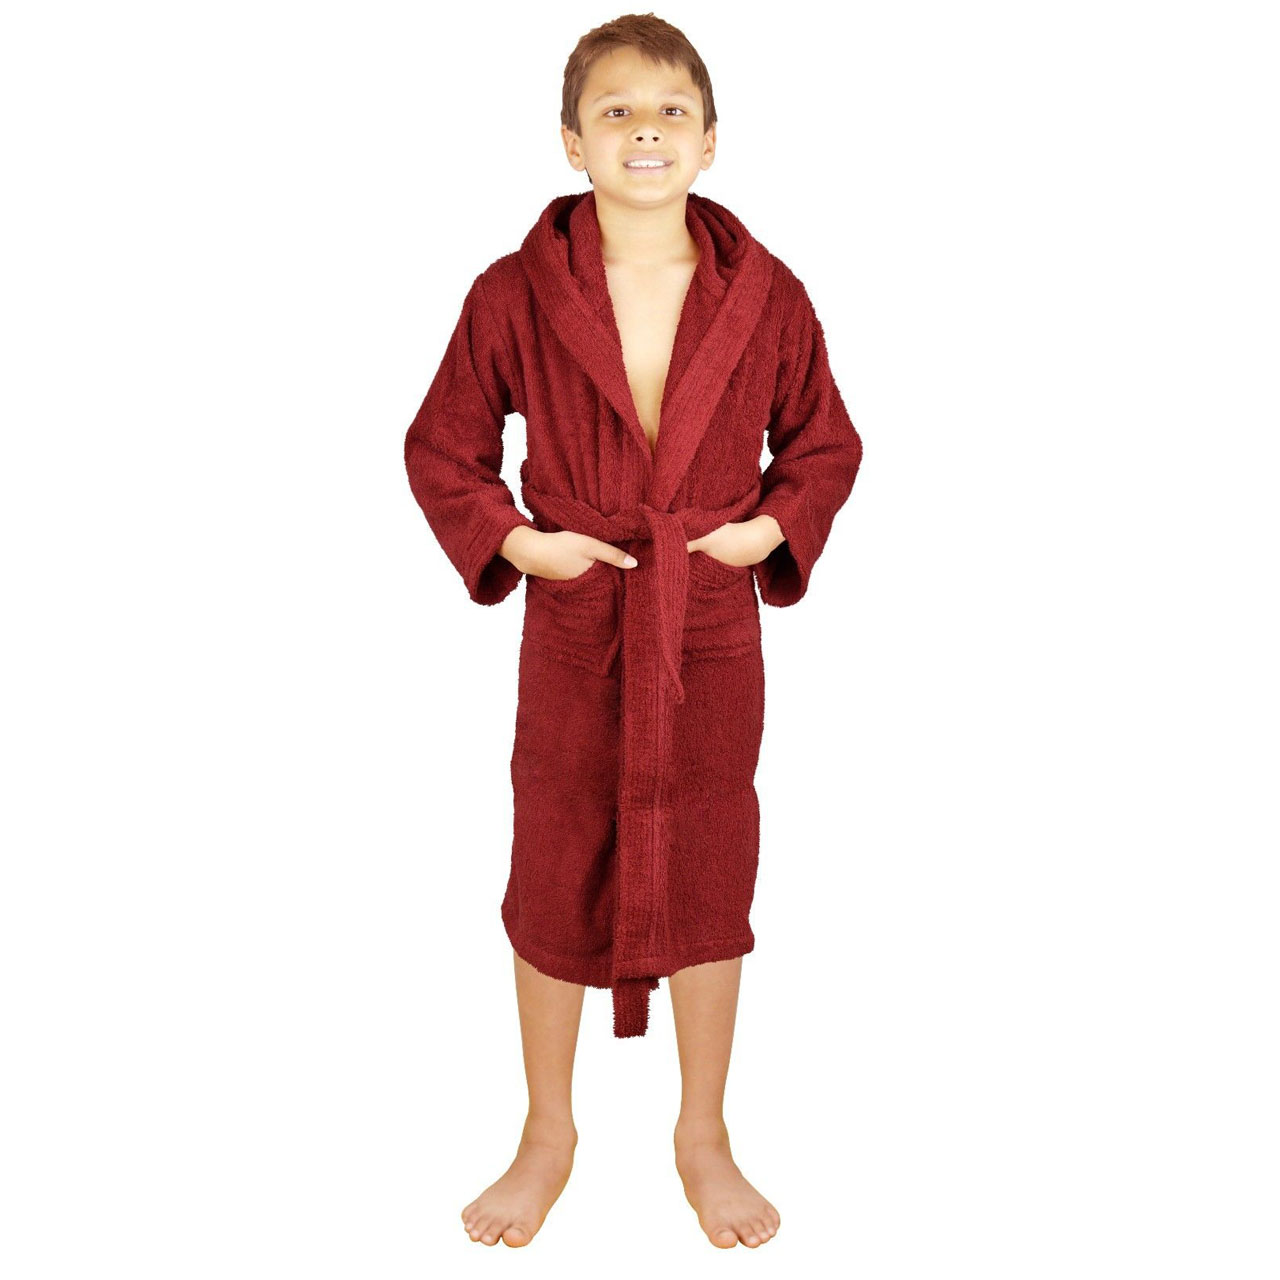 13057ce401 Terry Cloth Wine 100% Cotton Kid s Unisex Fit Hooded Bathrobes ...